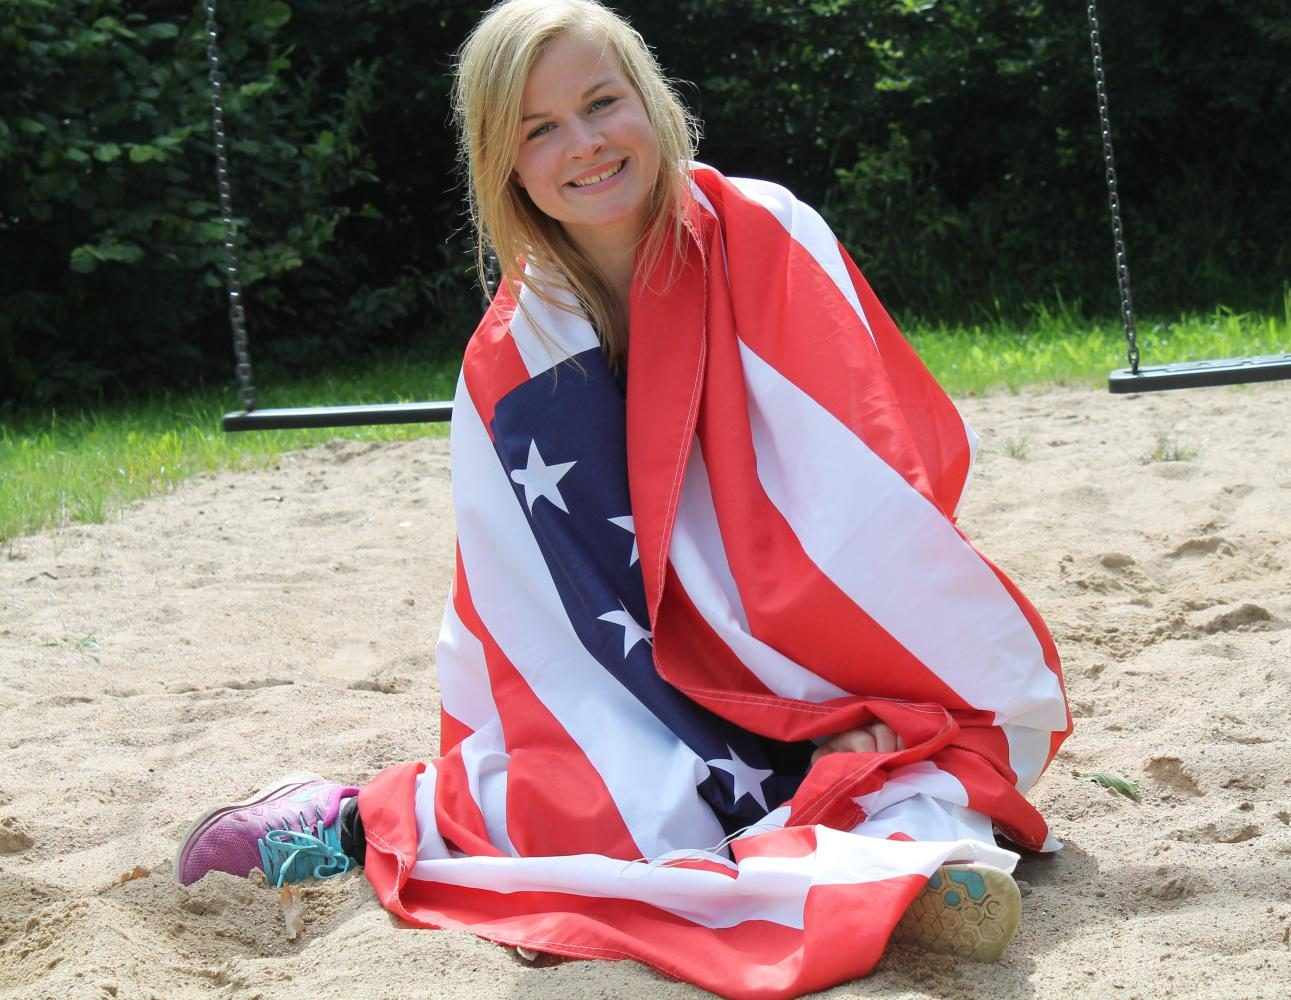 German Exchange student recaps year abroad, prepares for trip home